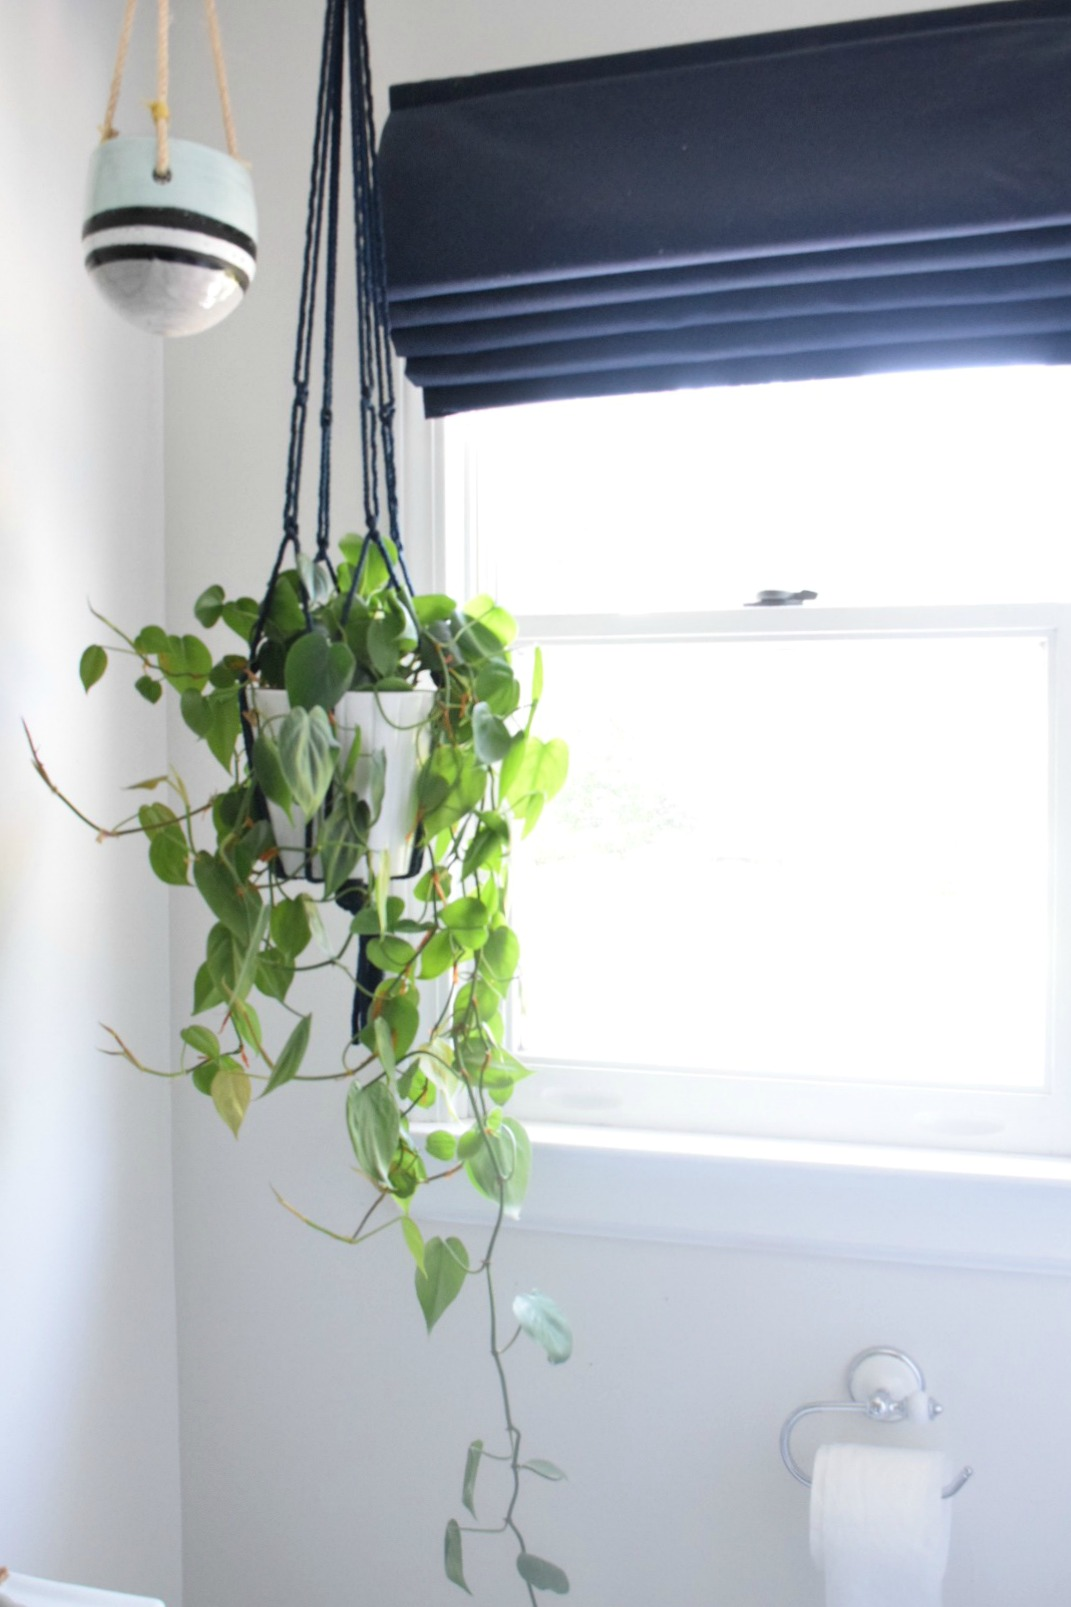 5 house plants that are low maintenance my tips on keeping them alive nesting with grace. Black Bedroom Furniture Sets. Home Design Ideas